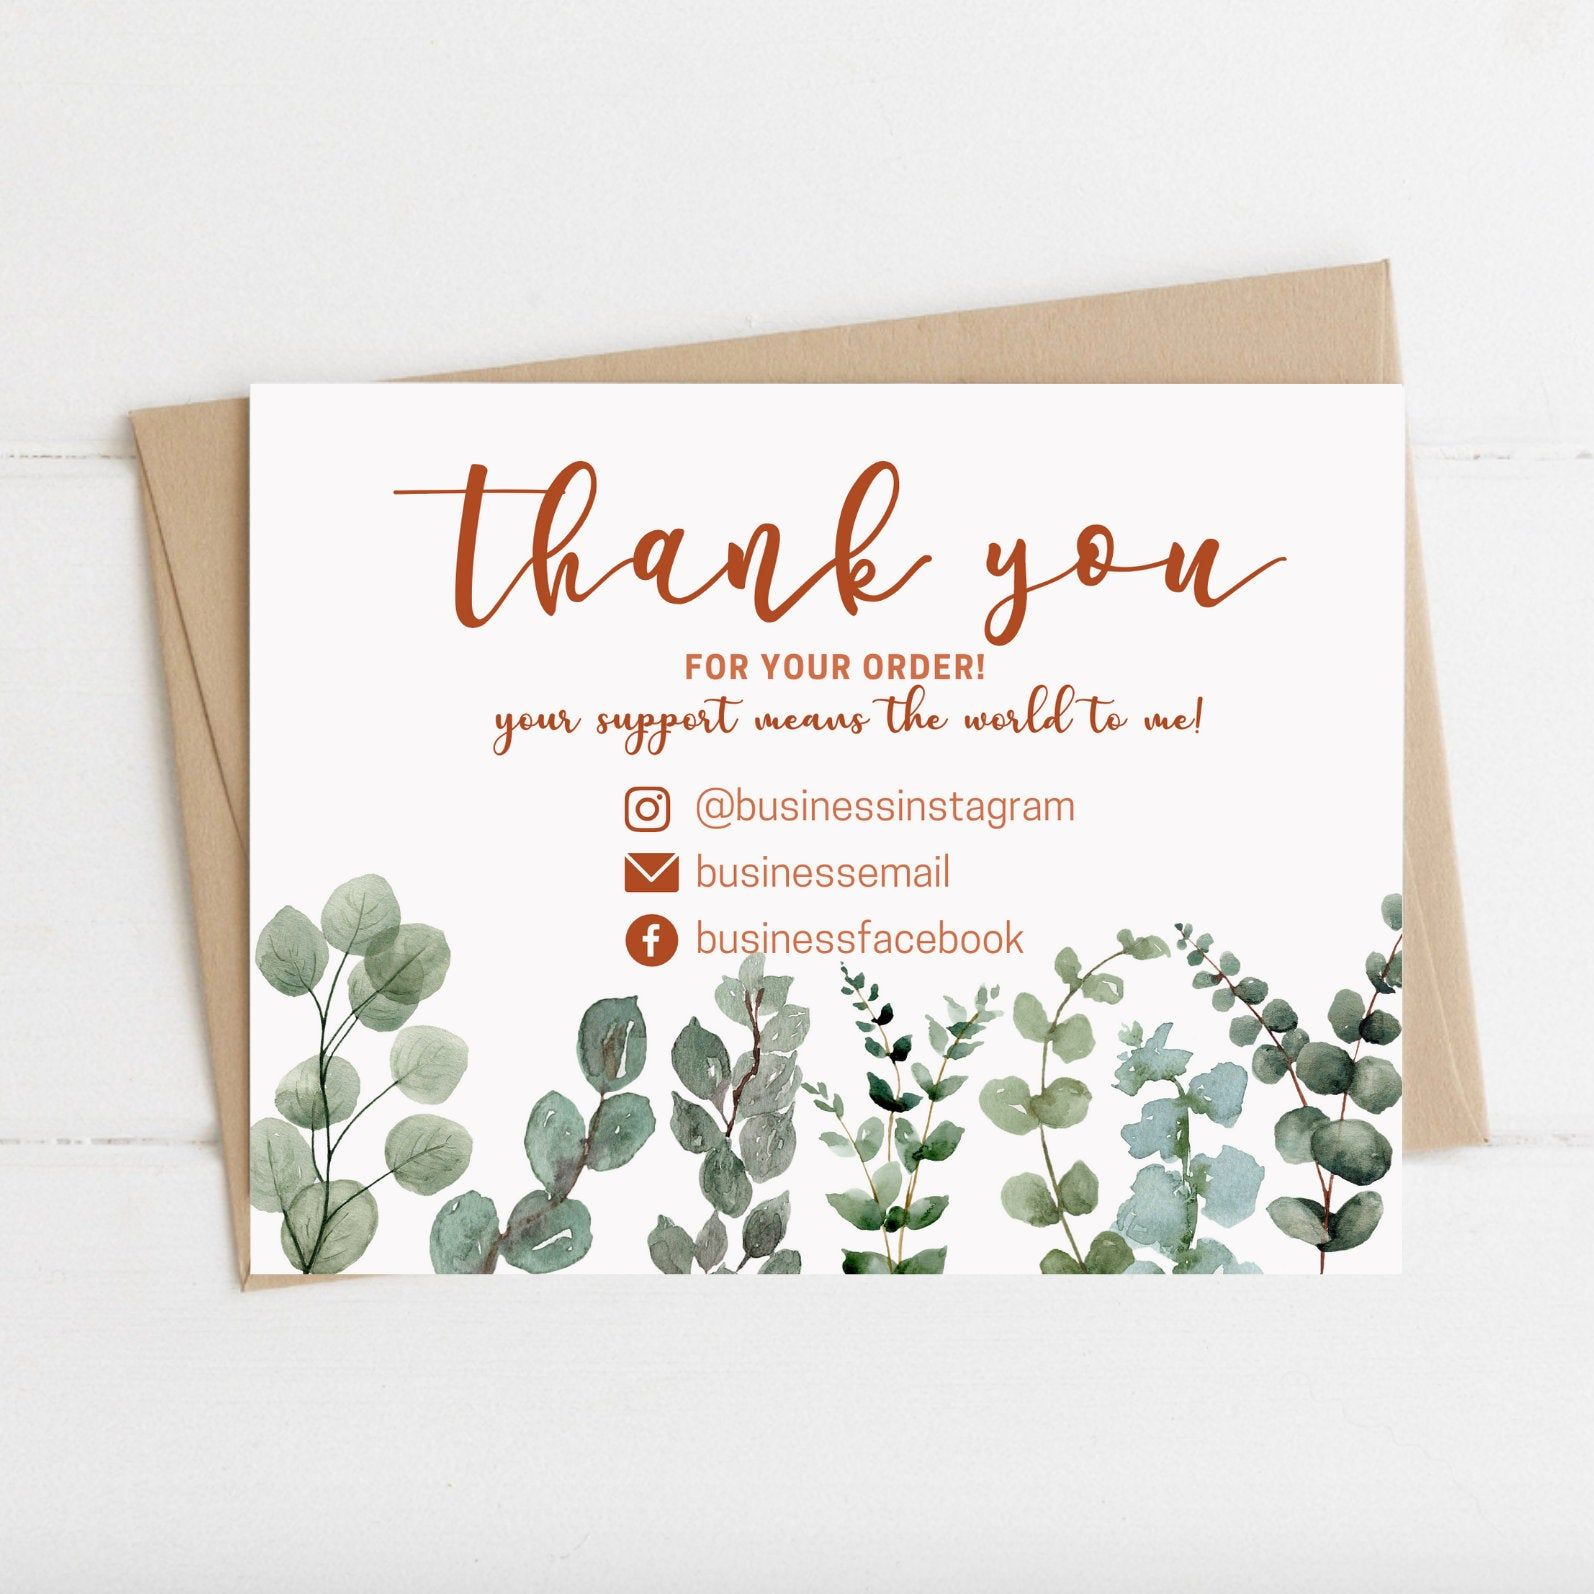 Instant Download Thank You Card Editable And Printable Thank You Card Thank You Card For Business Greenery Thank You Business Cards In 2021 Printable Thank You Cards Thank You Cards Thanks Card